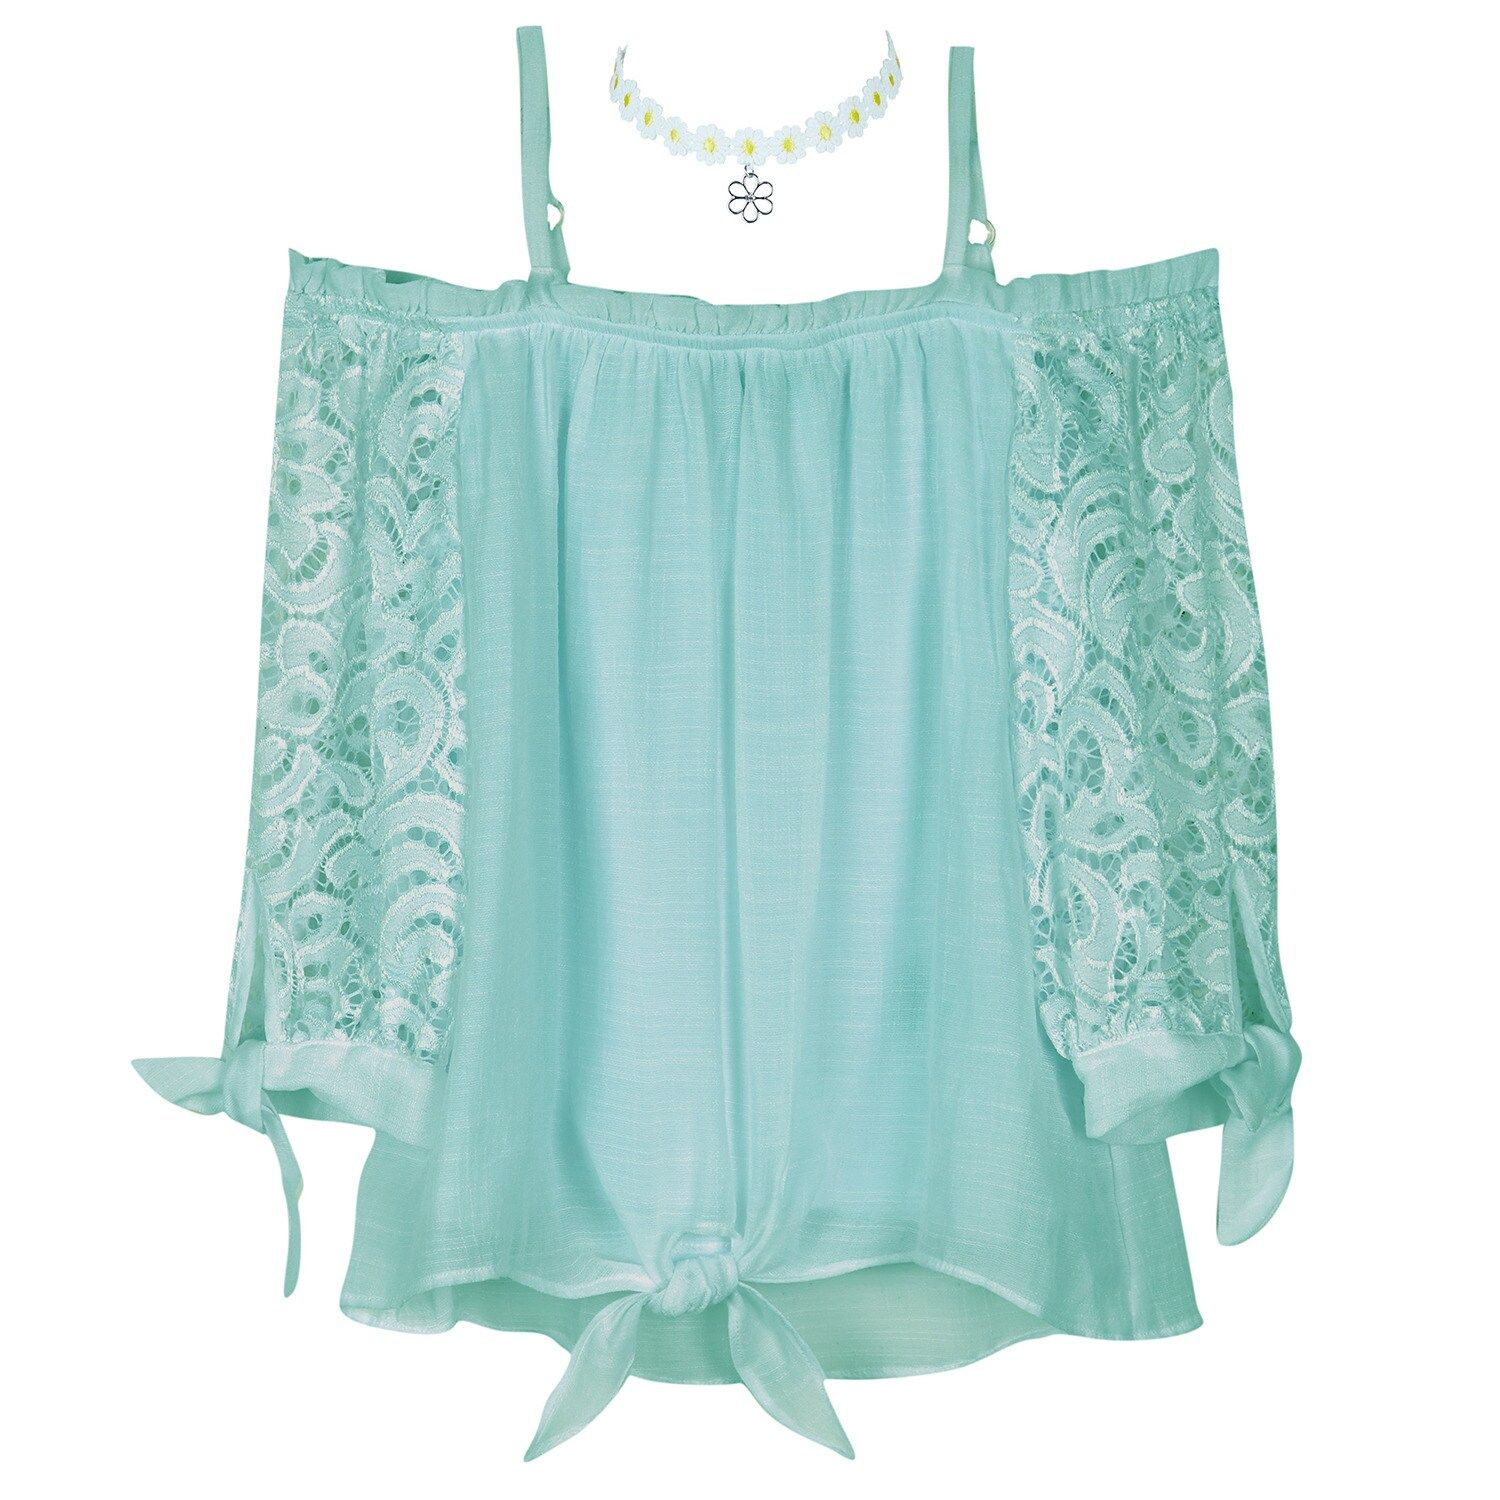 Photo of Girls 7-16 & Plus Size IZ Amy Byer Off-the-Shoulder Lace Top